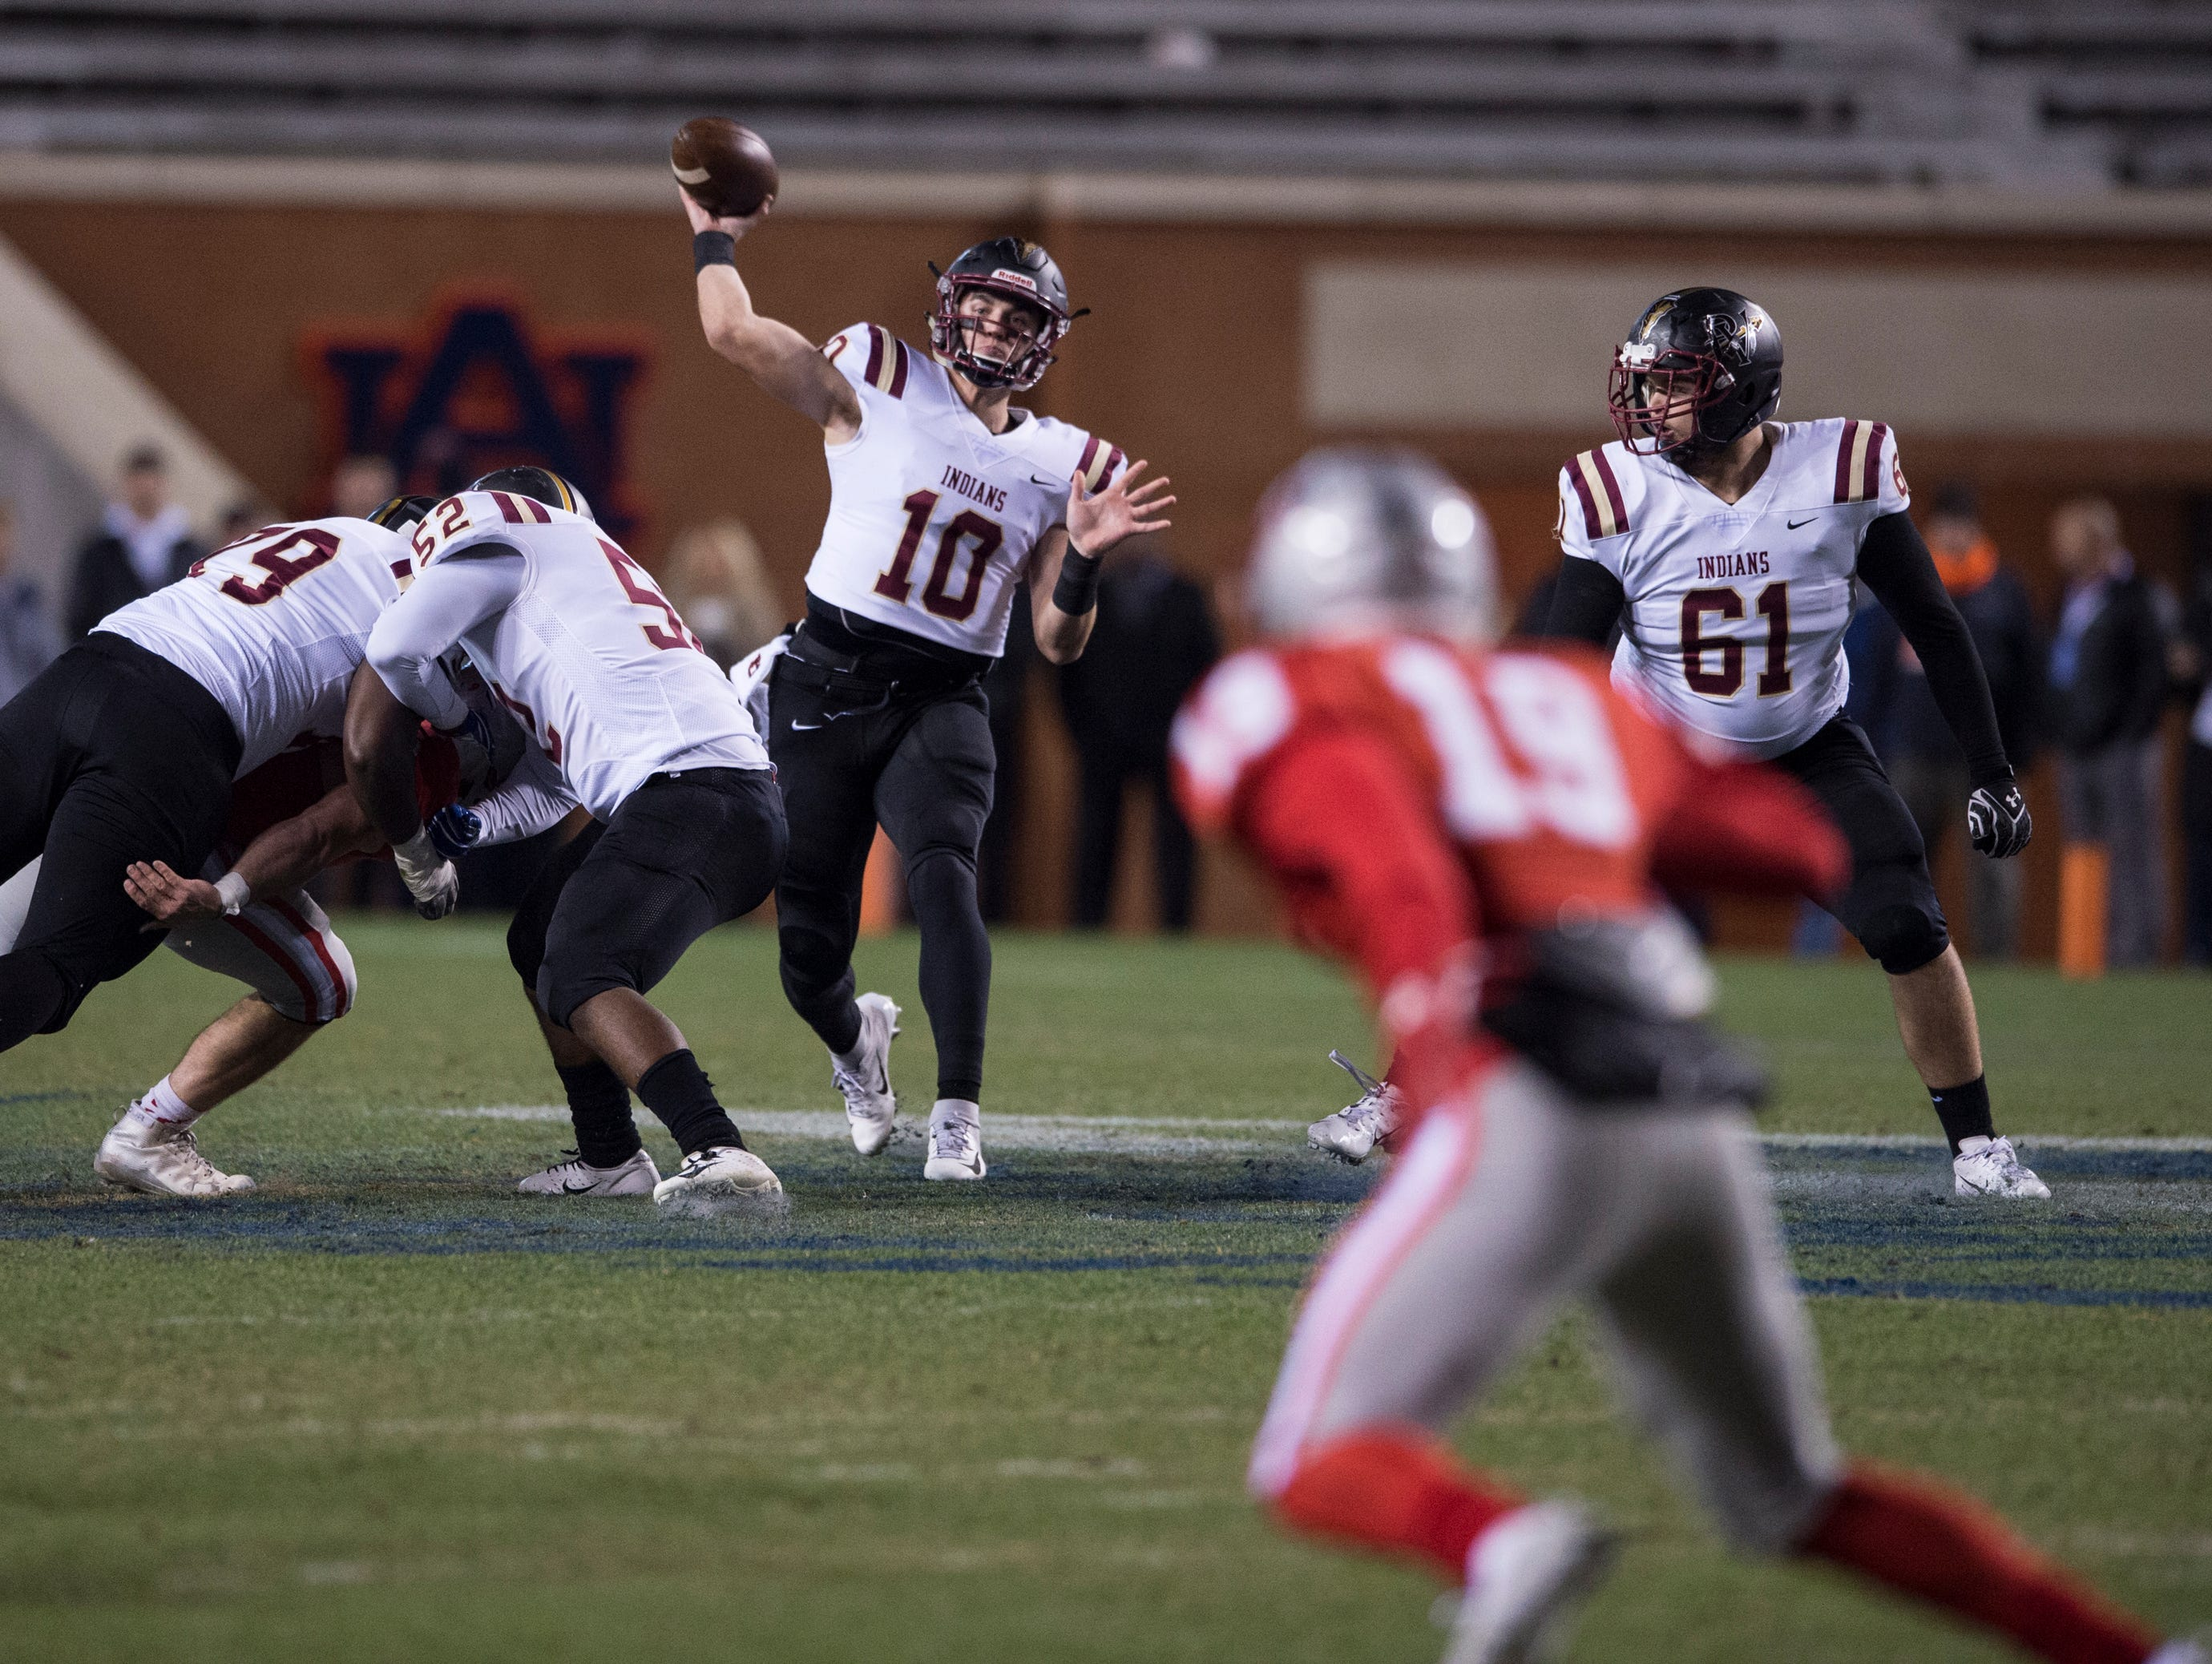 Pinson Valley's Bo Nix (10) throws the ball down field during the Class 6A state championship at Jordan-Hare Stadium in Auburn, Ala., on Friday, Dec. 7, 2018. Pinson Valley leads Saraland 12-3 at halftime.